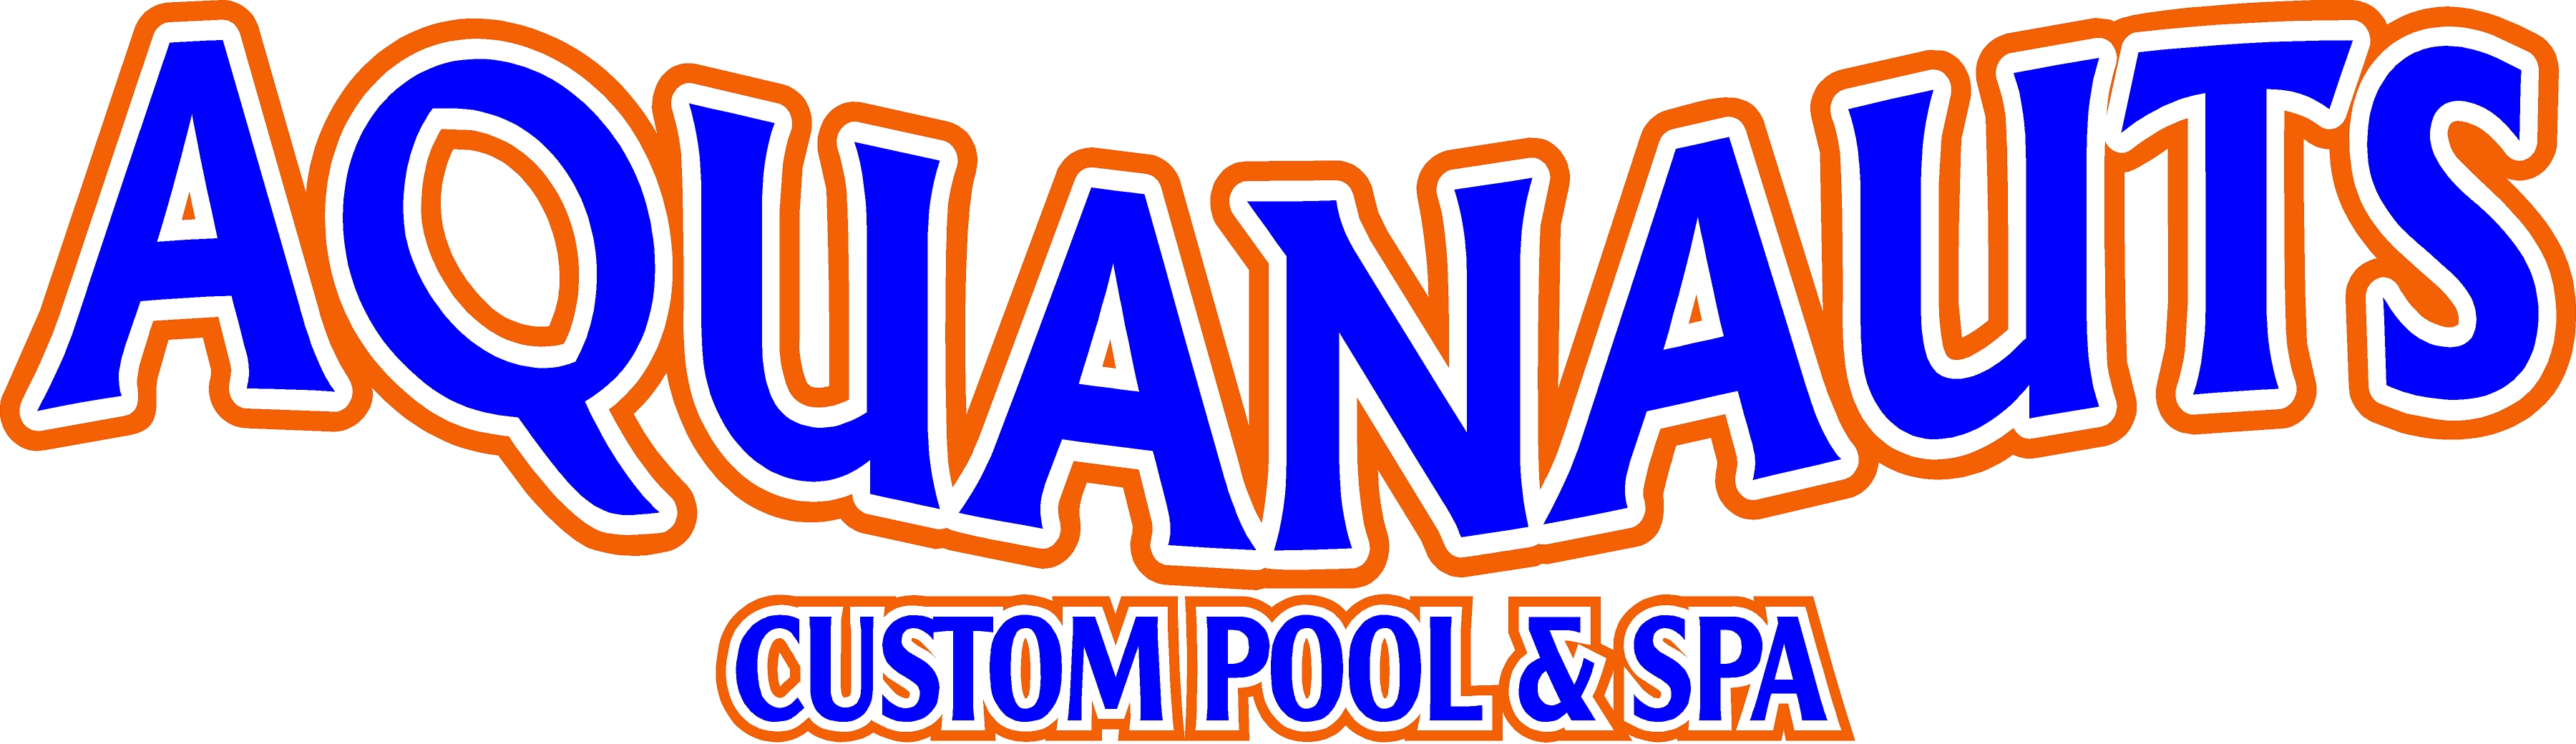 Aquanauts Custom Built Pools and Spas